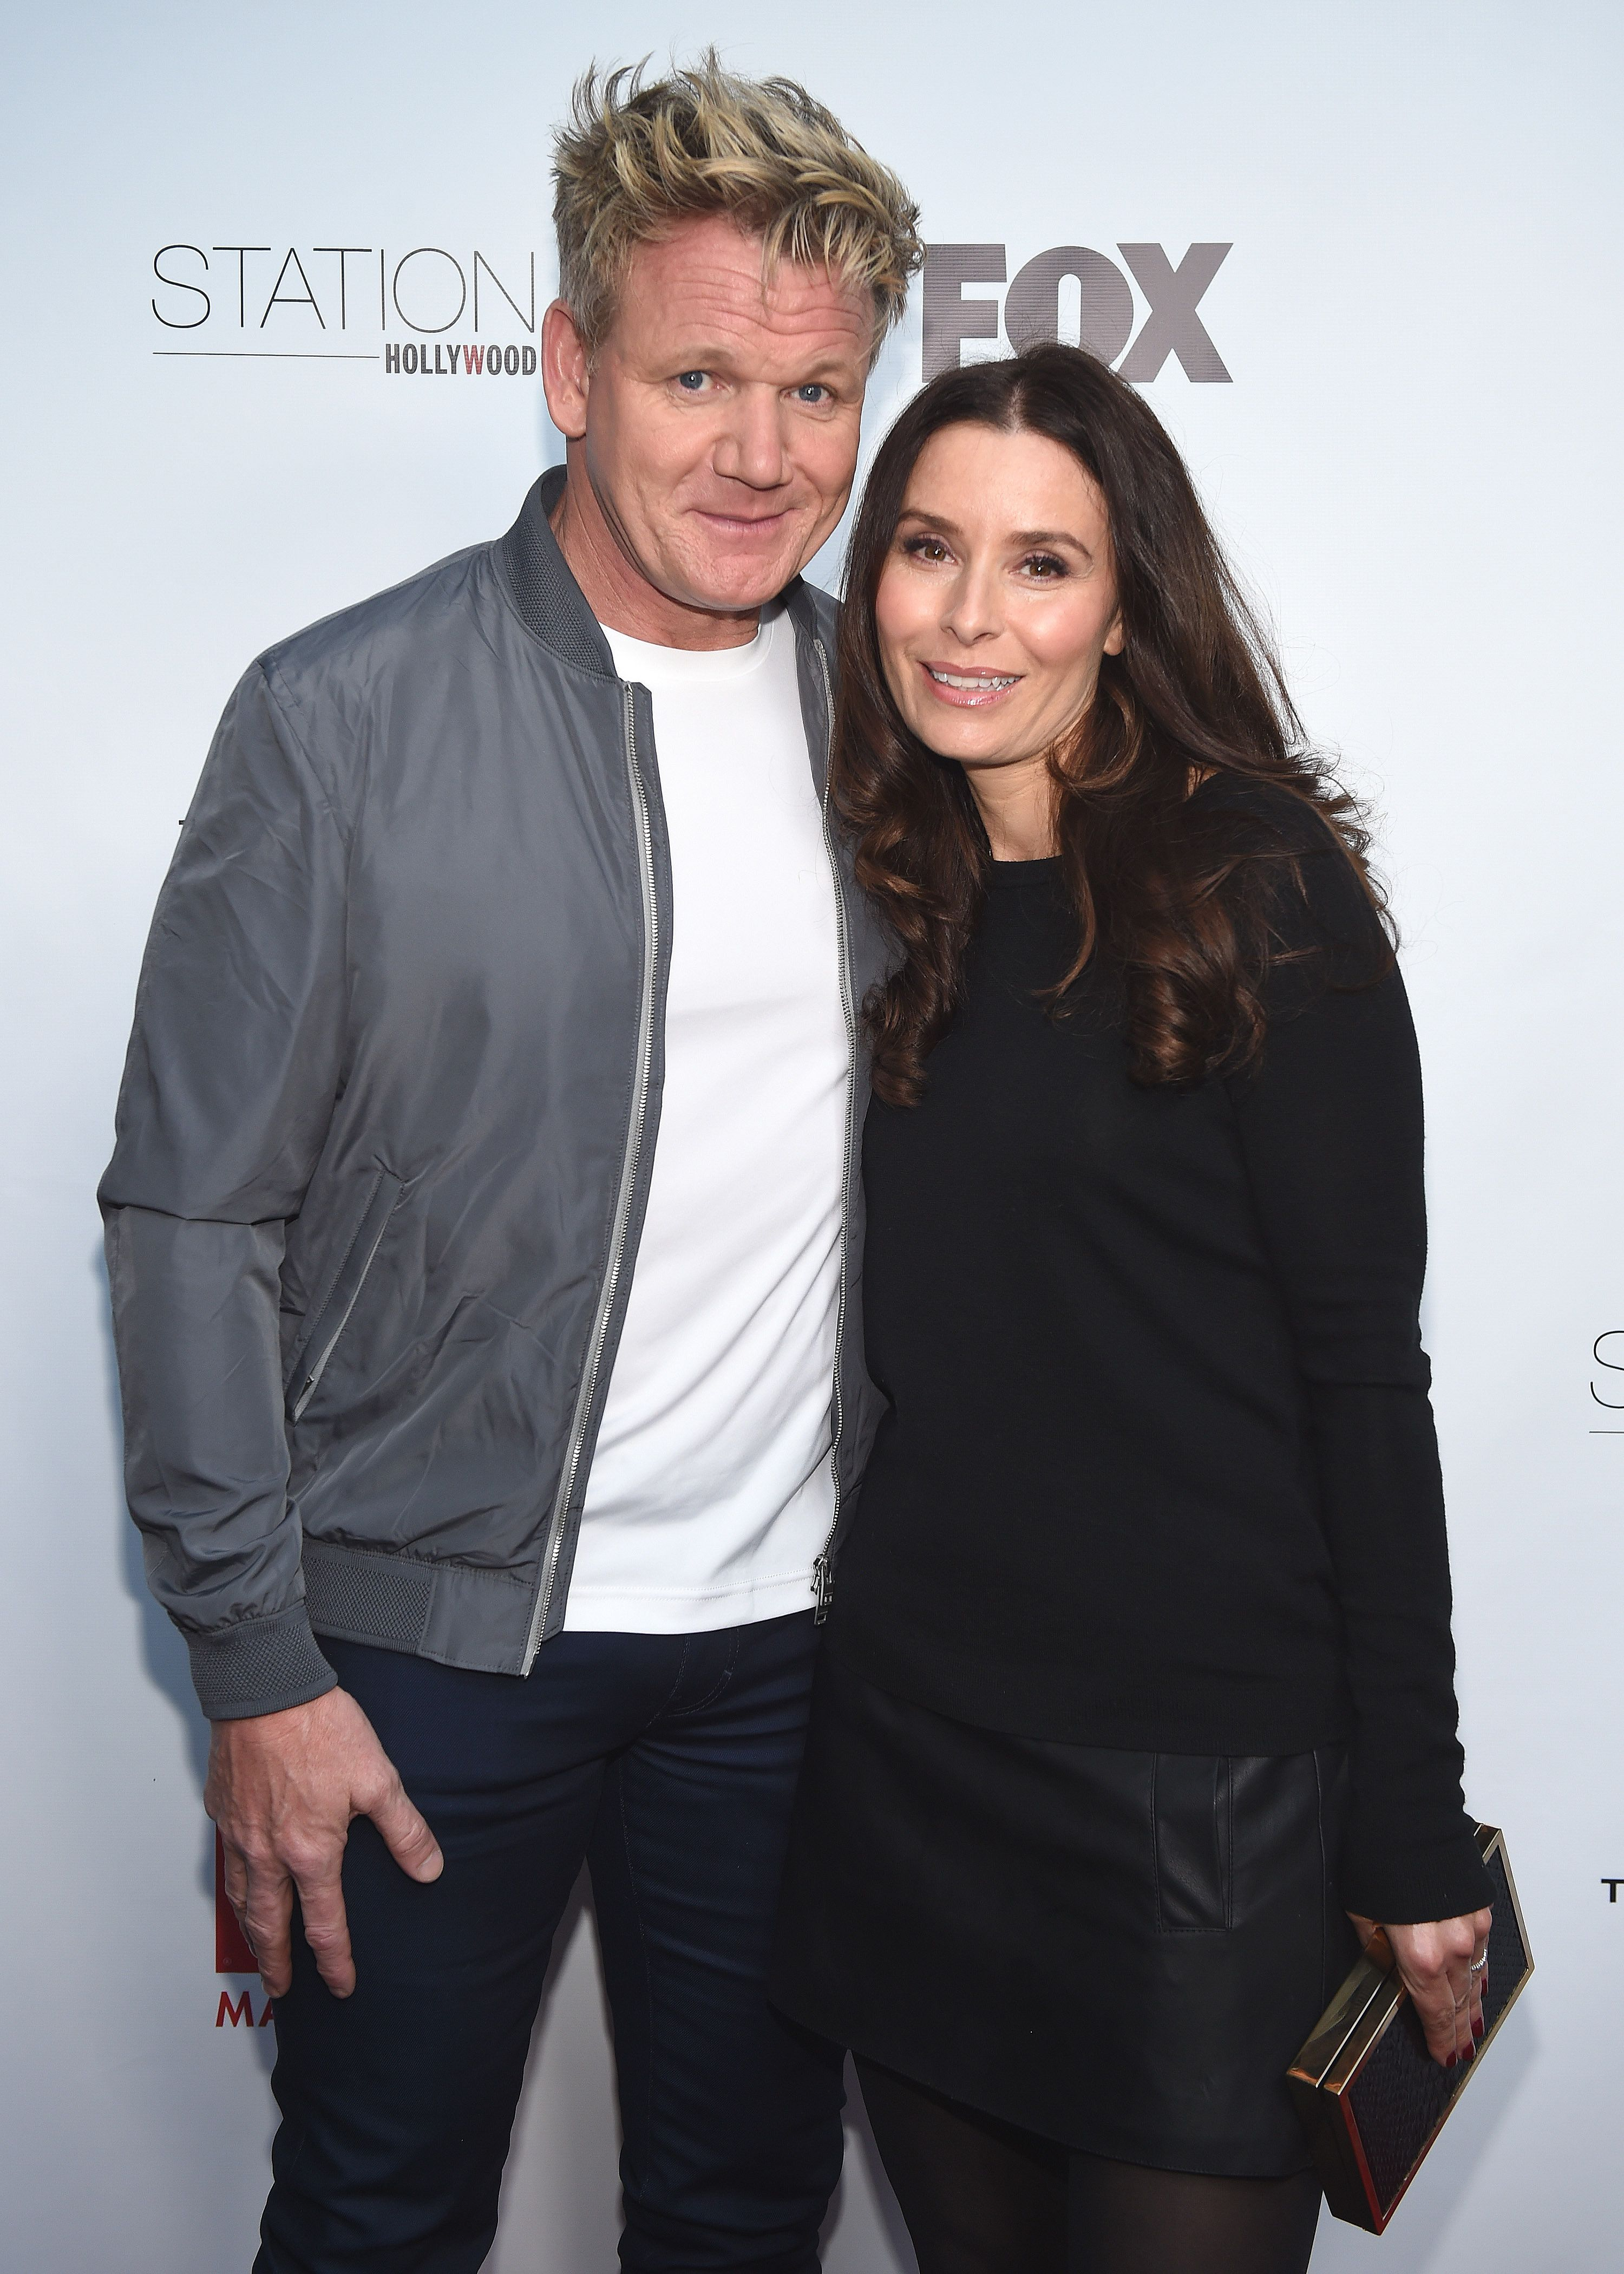 Gordon Ramsay And Wife Tana Announce They're Expecting Their Fifth